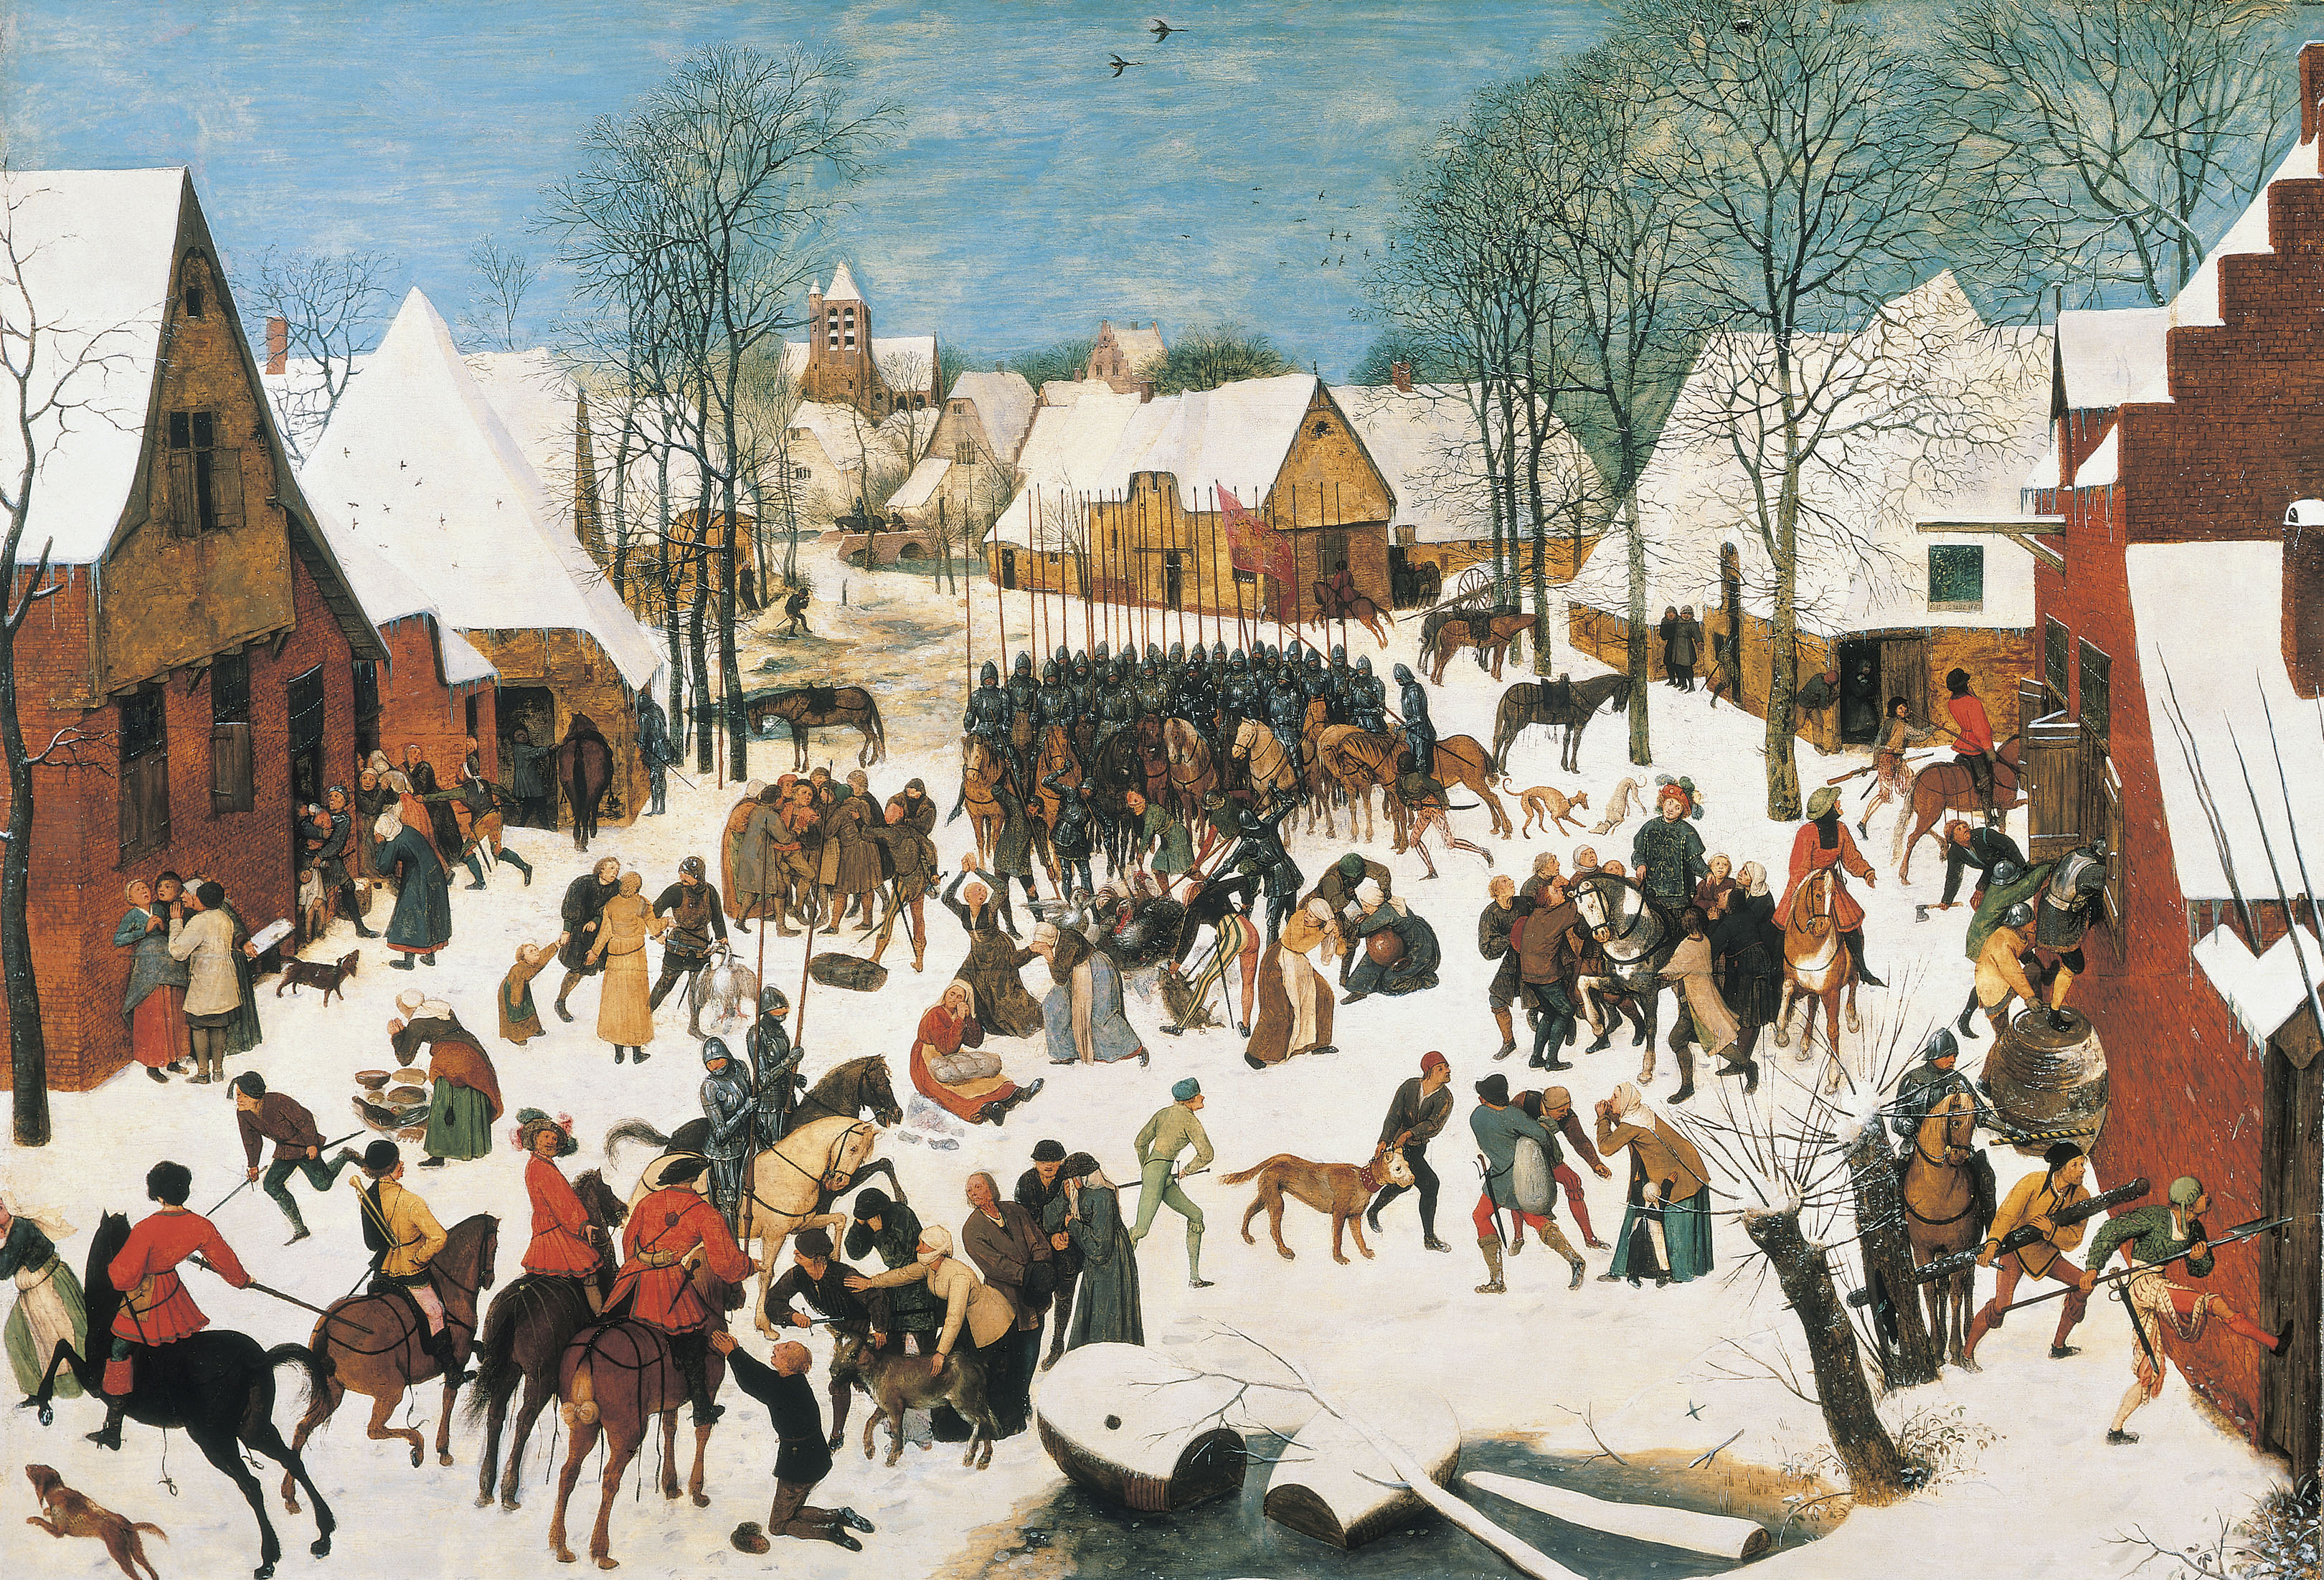 Pieter Brugel the Elder, The Massacre of the Innocents, c.1565/67